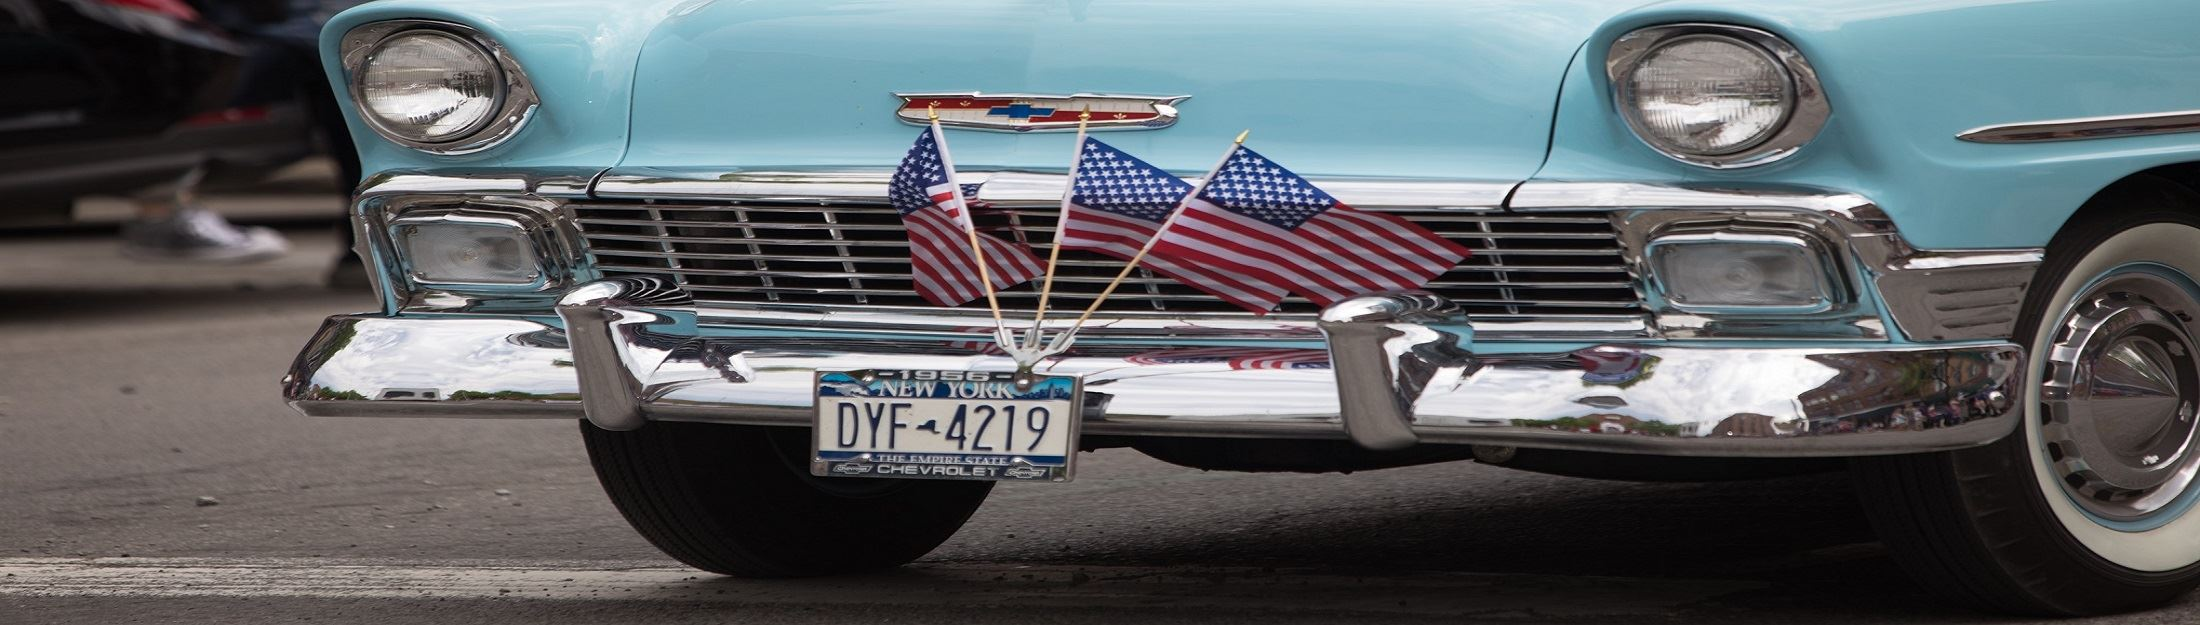 American Flags On Front Of Car by Tourism Office